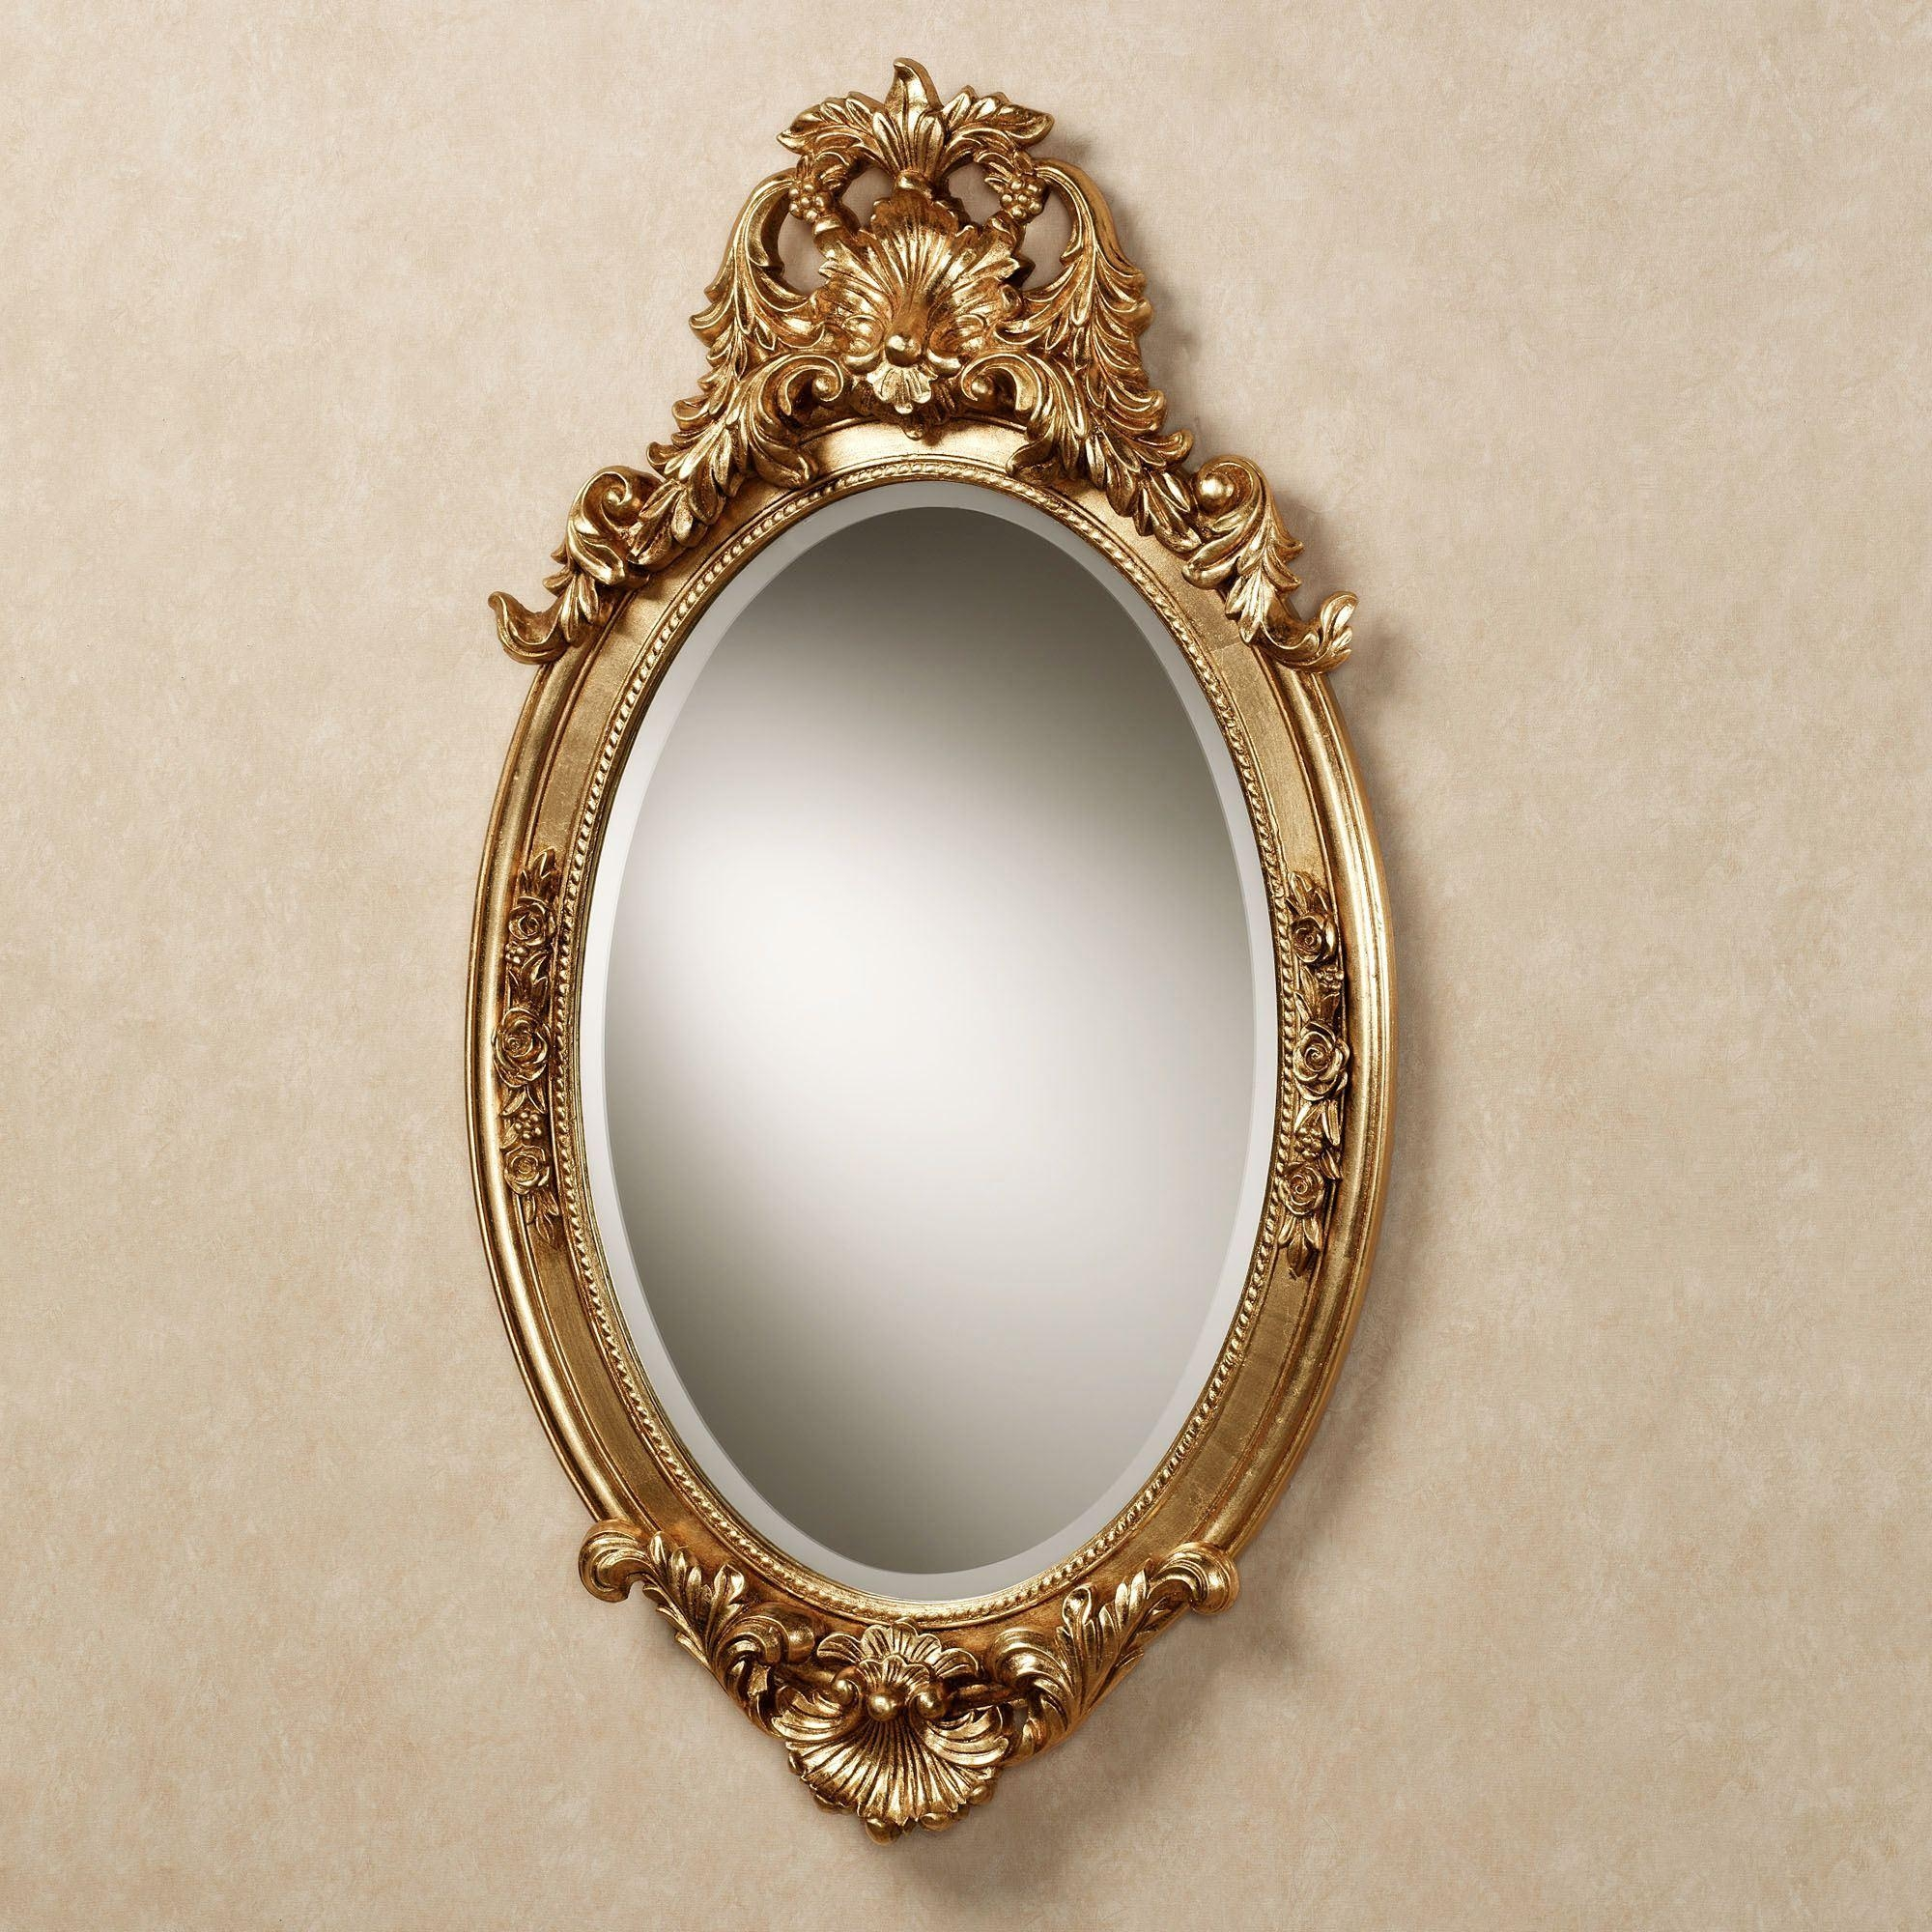 Hallandale Acanthus Leaf Oval Wall Mirror Intended For Antique Wall Mirror (Image 11 of 20)